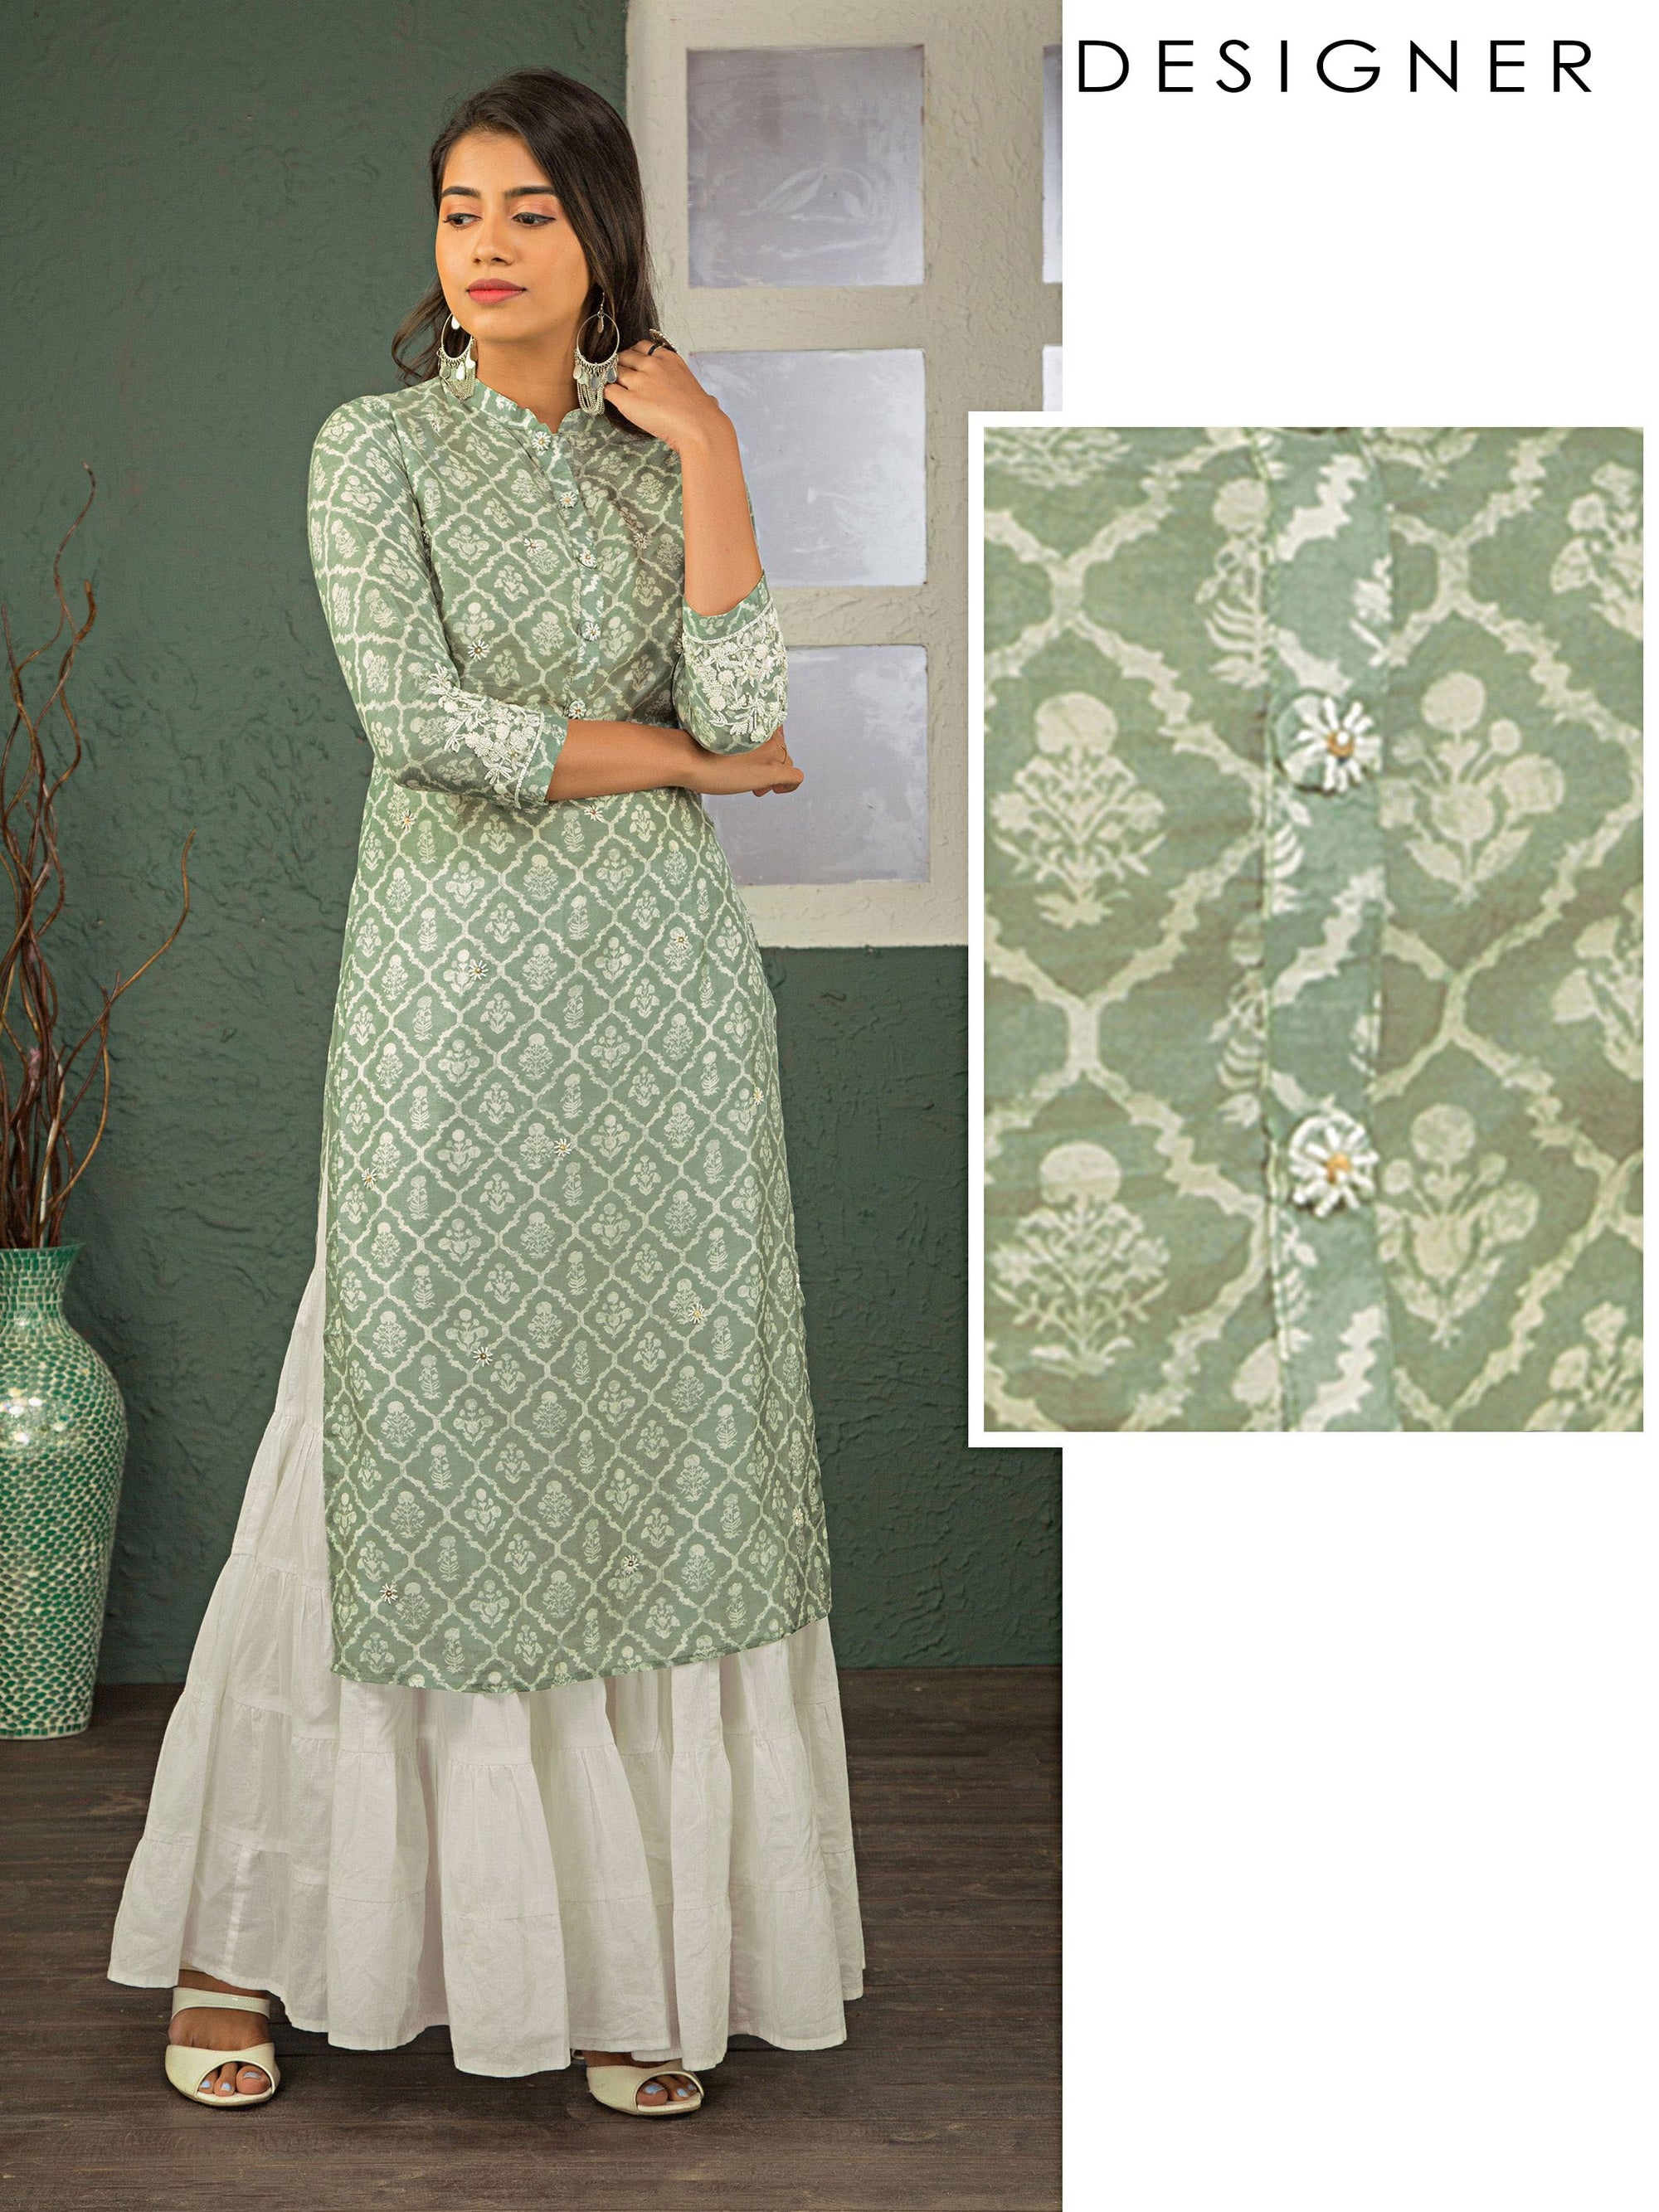 Floral Printed Kurta With Cutdana And French Knot Embroidery - Pastel Green